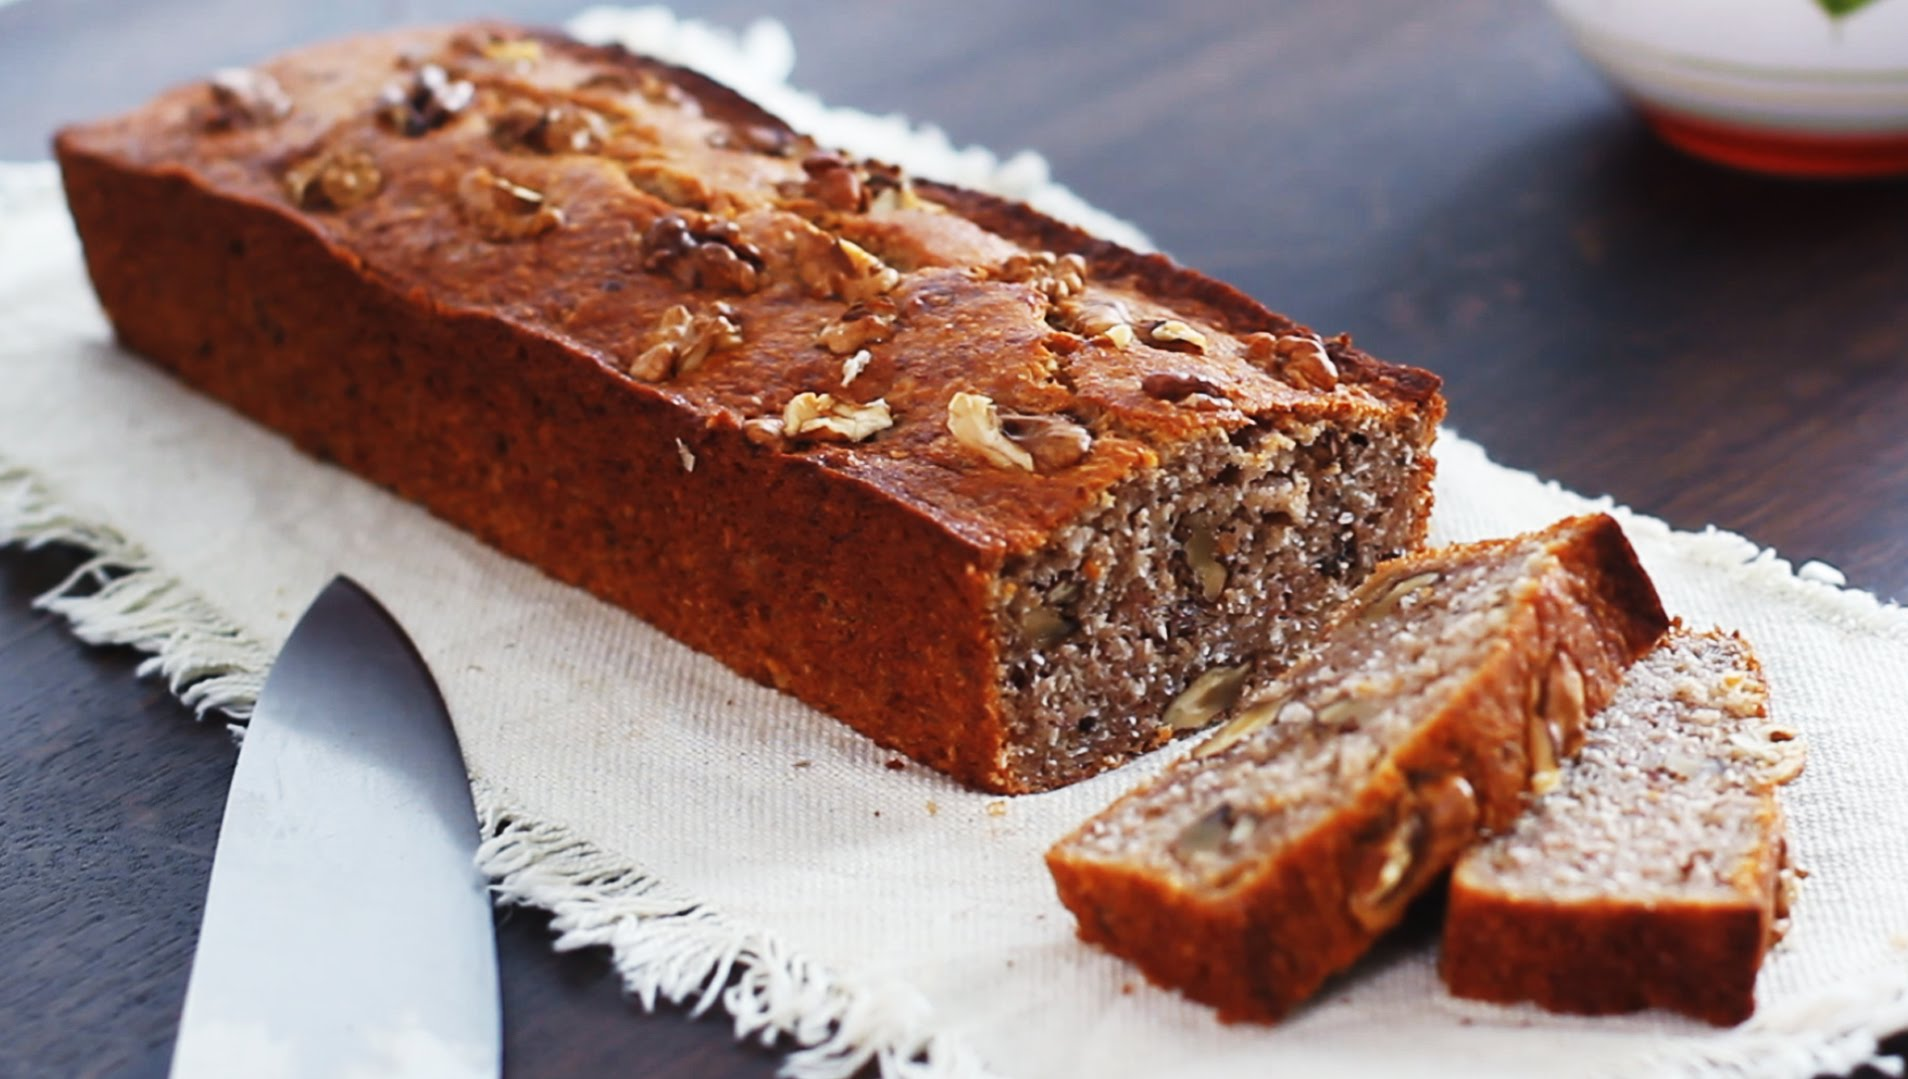 You Will Never Guess What Ingredient She Adds To This Banana Bread